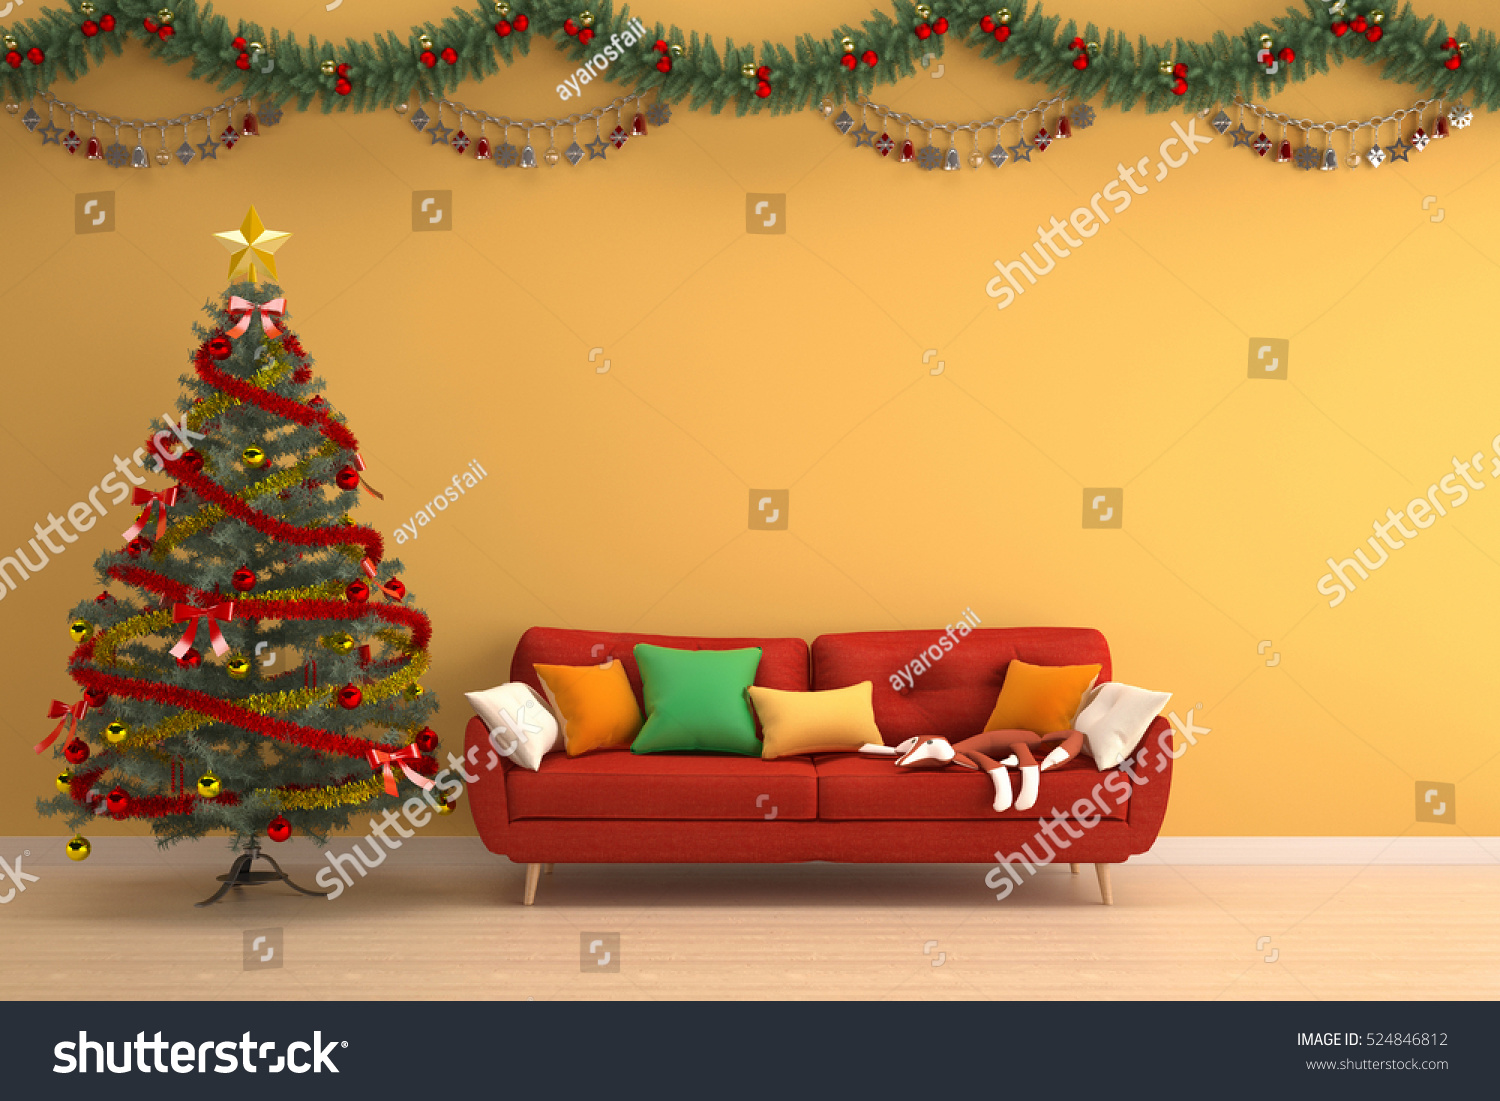 Christmas Tree Yellow Living Room Red Stock Illustration 524846812 ...